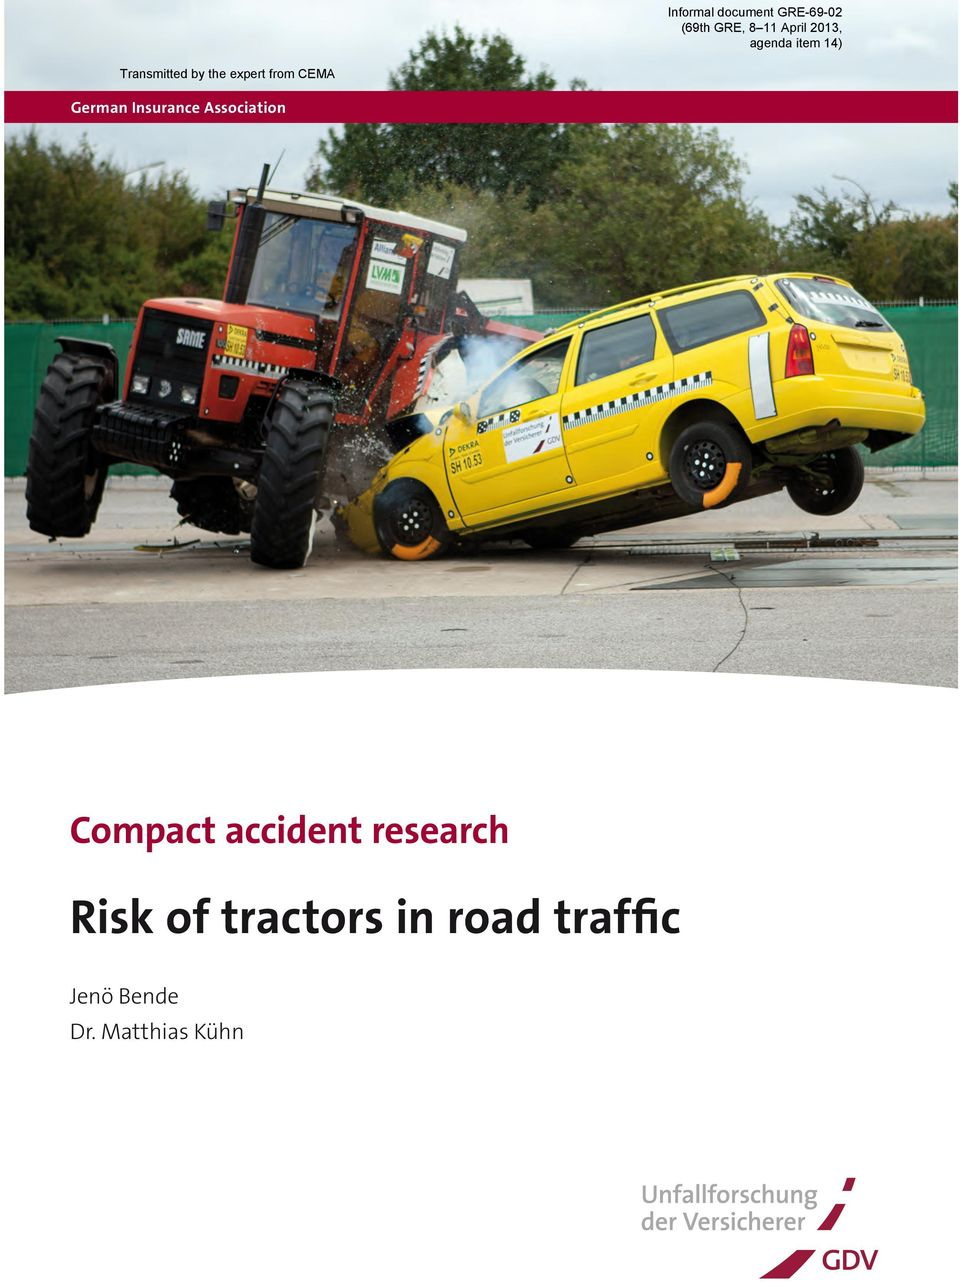 Risk of tractors in road